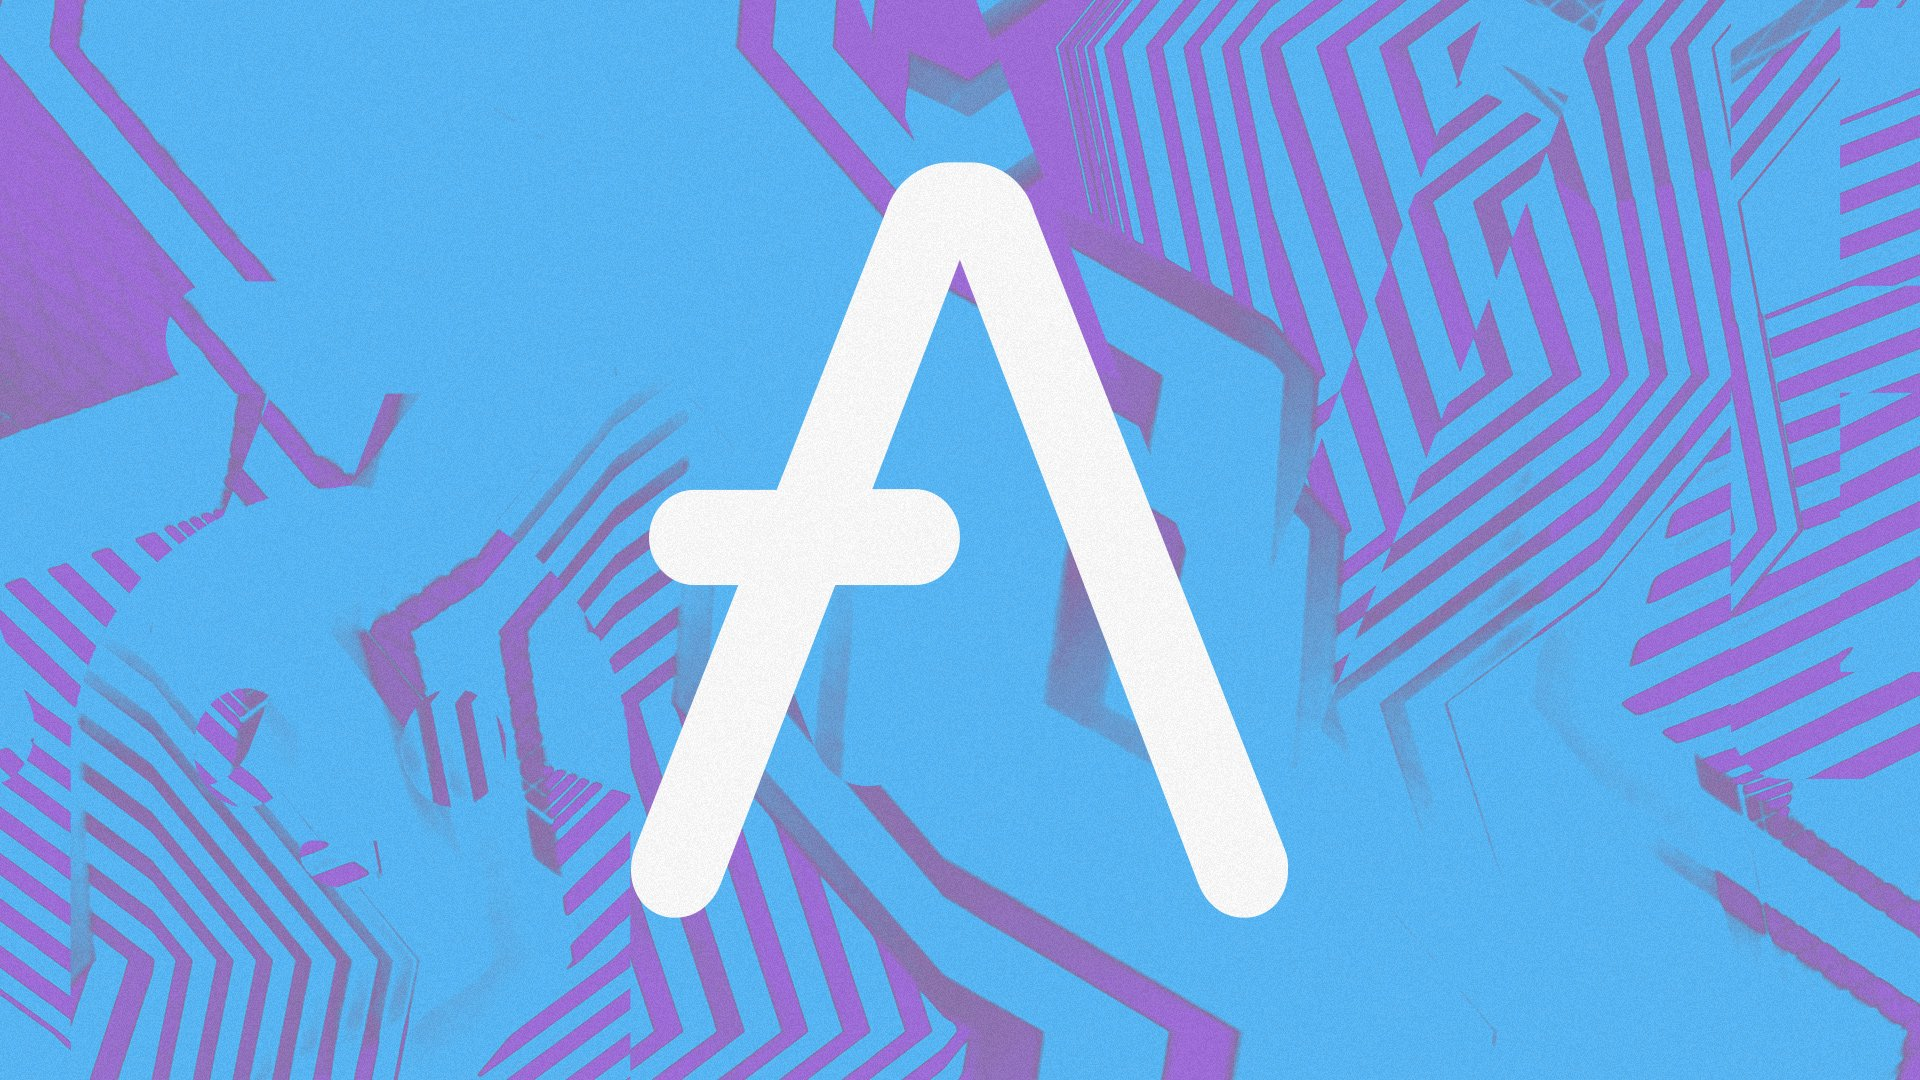 Aave to launch institutional DeFi platform Aave Arc within weeks